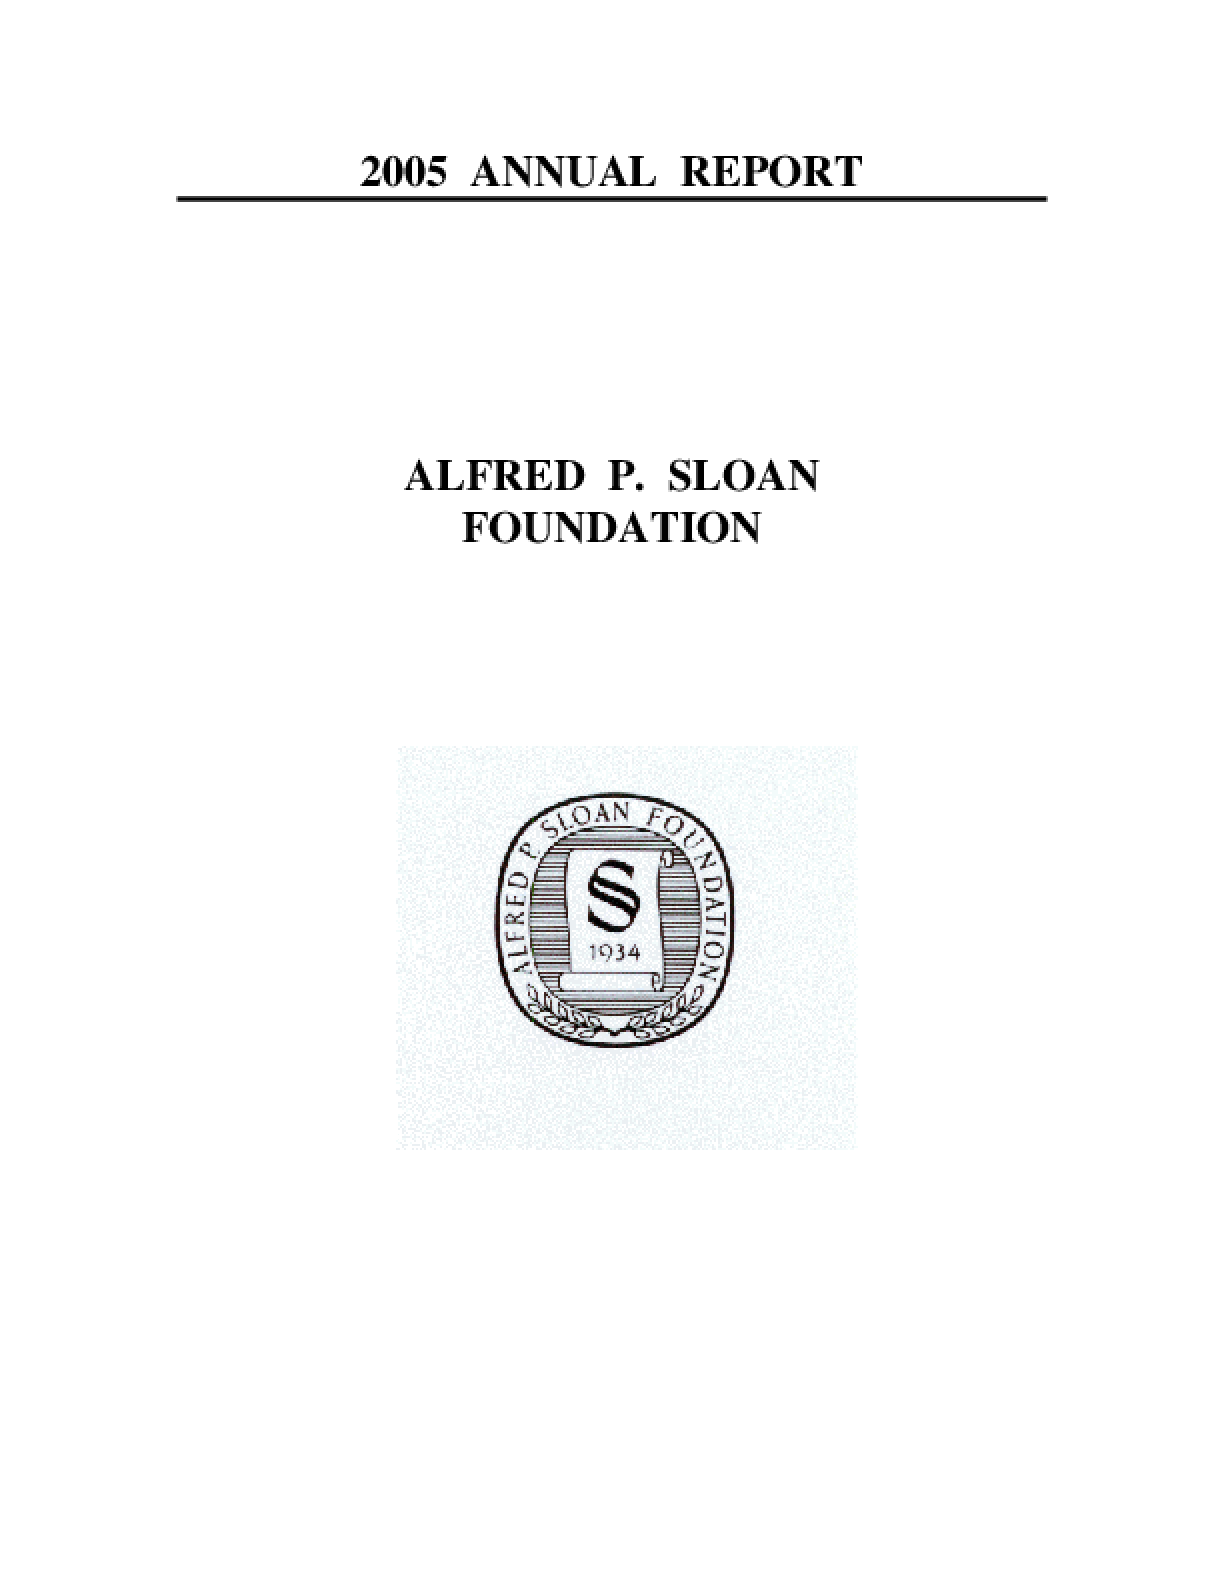 Alfred P. Sloan Foundation - 2005 Annual Report